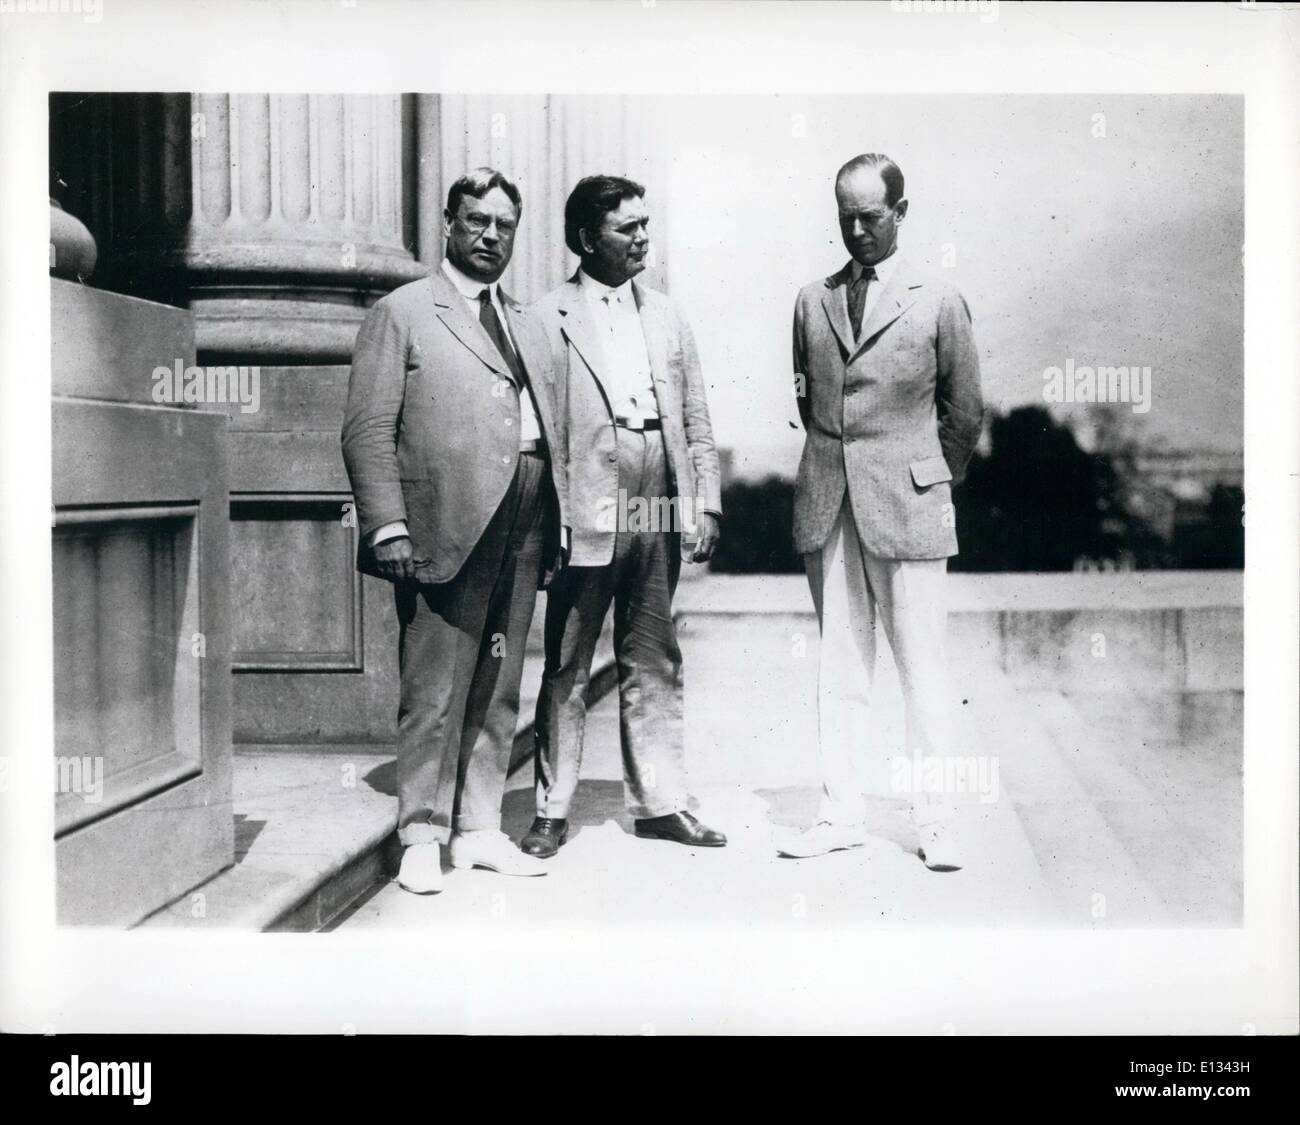 Feb. 26, 2012 - 3 Senators who are on tours in opposition to Pres. Wilson's appeal for League of Nations. L to R : Hirum W. Johnson, William E. Borah & Medill McCormick. - Stock Image